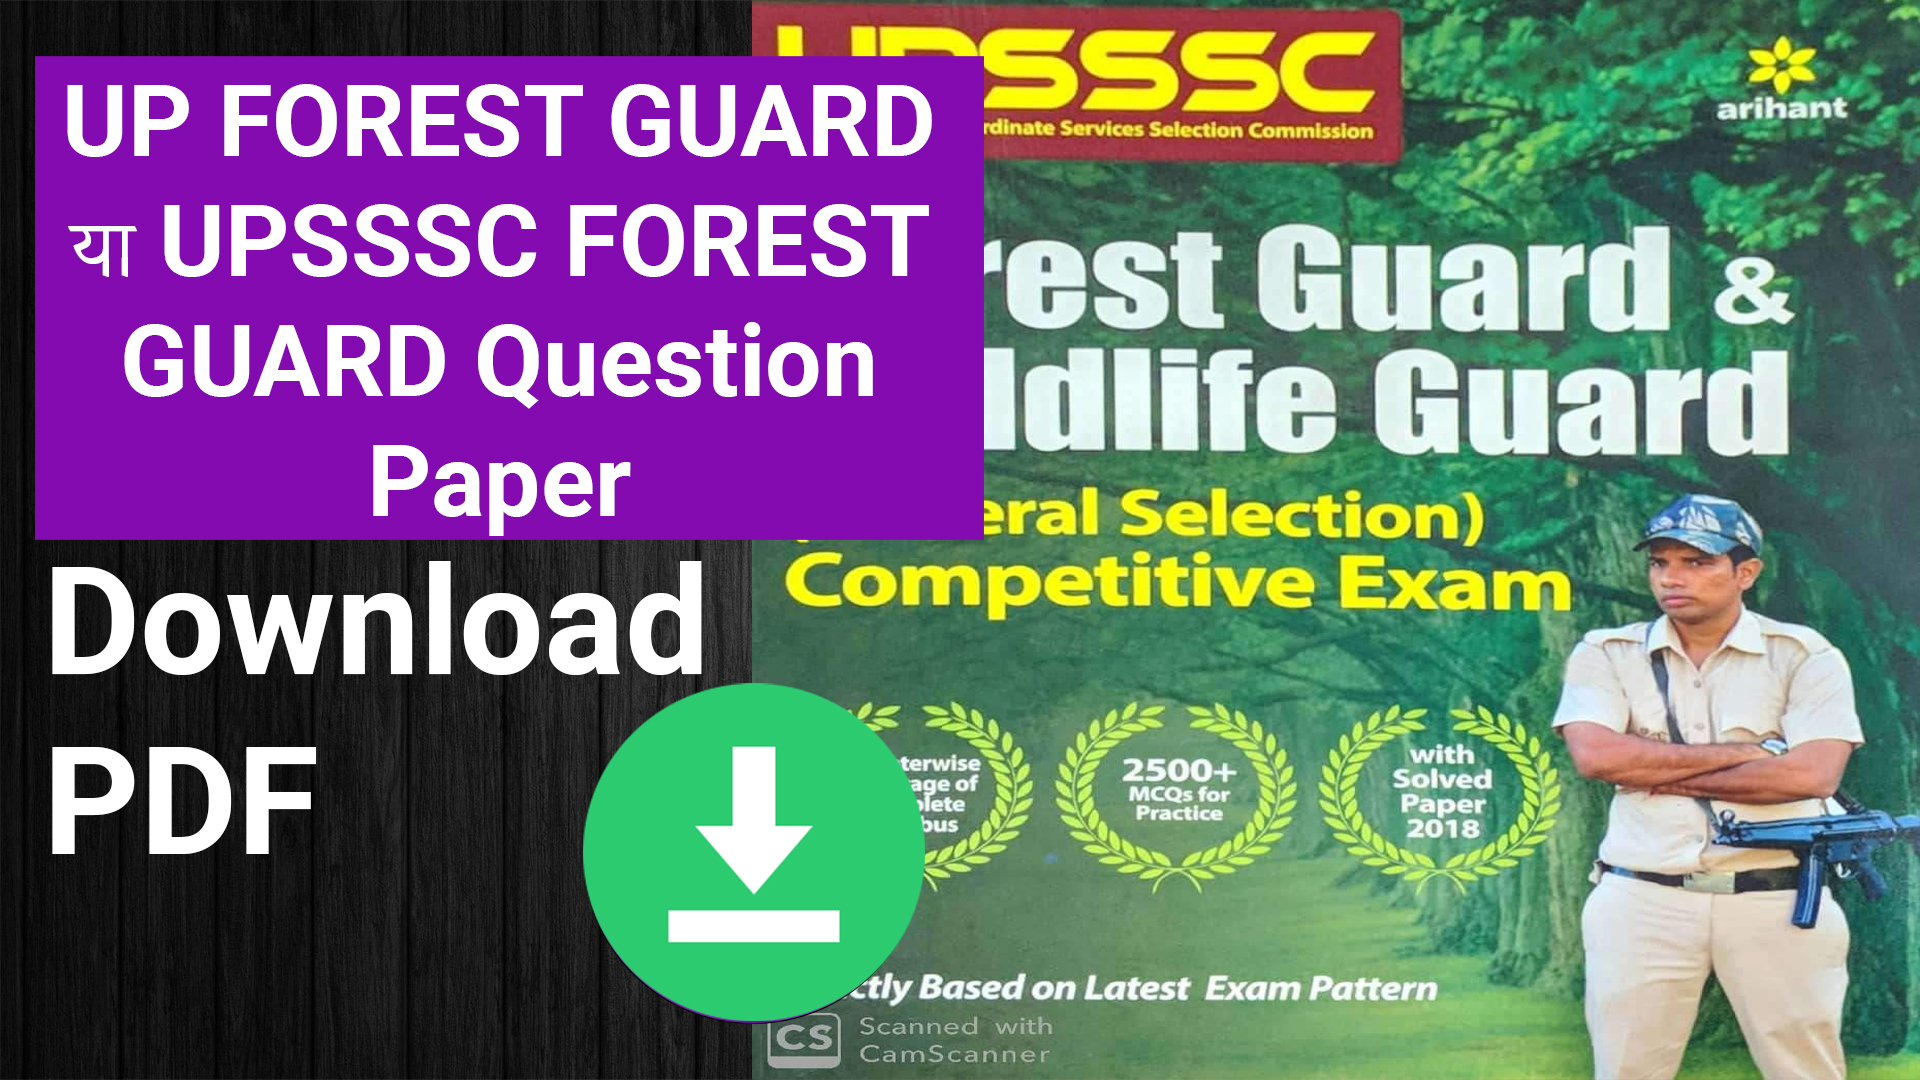 UP FOREST GUARD या UPSSSC FOREST GUARD Question Paper